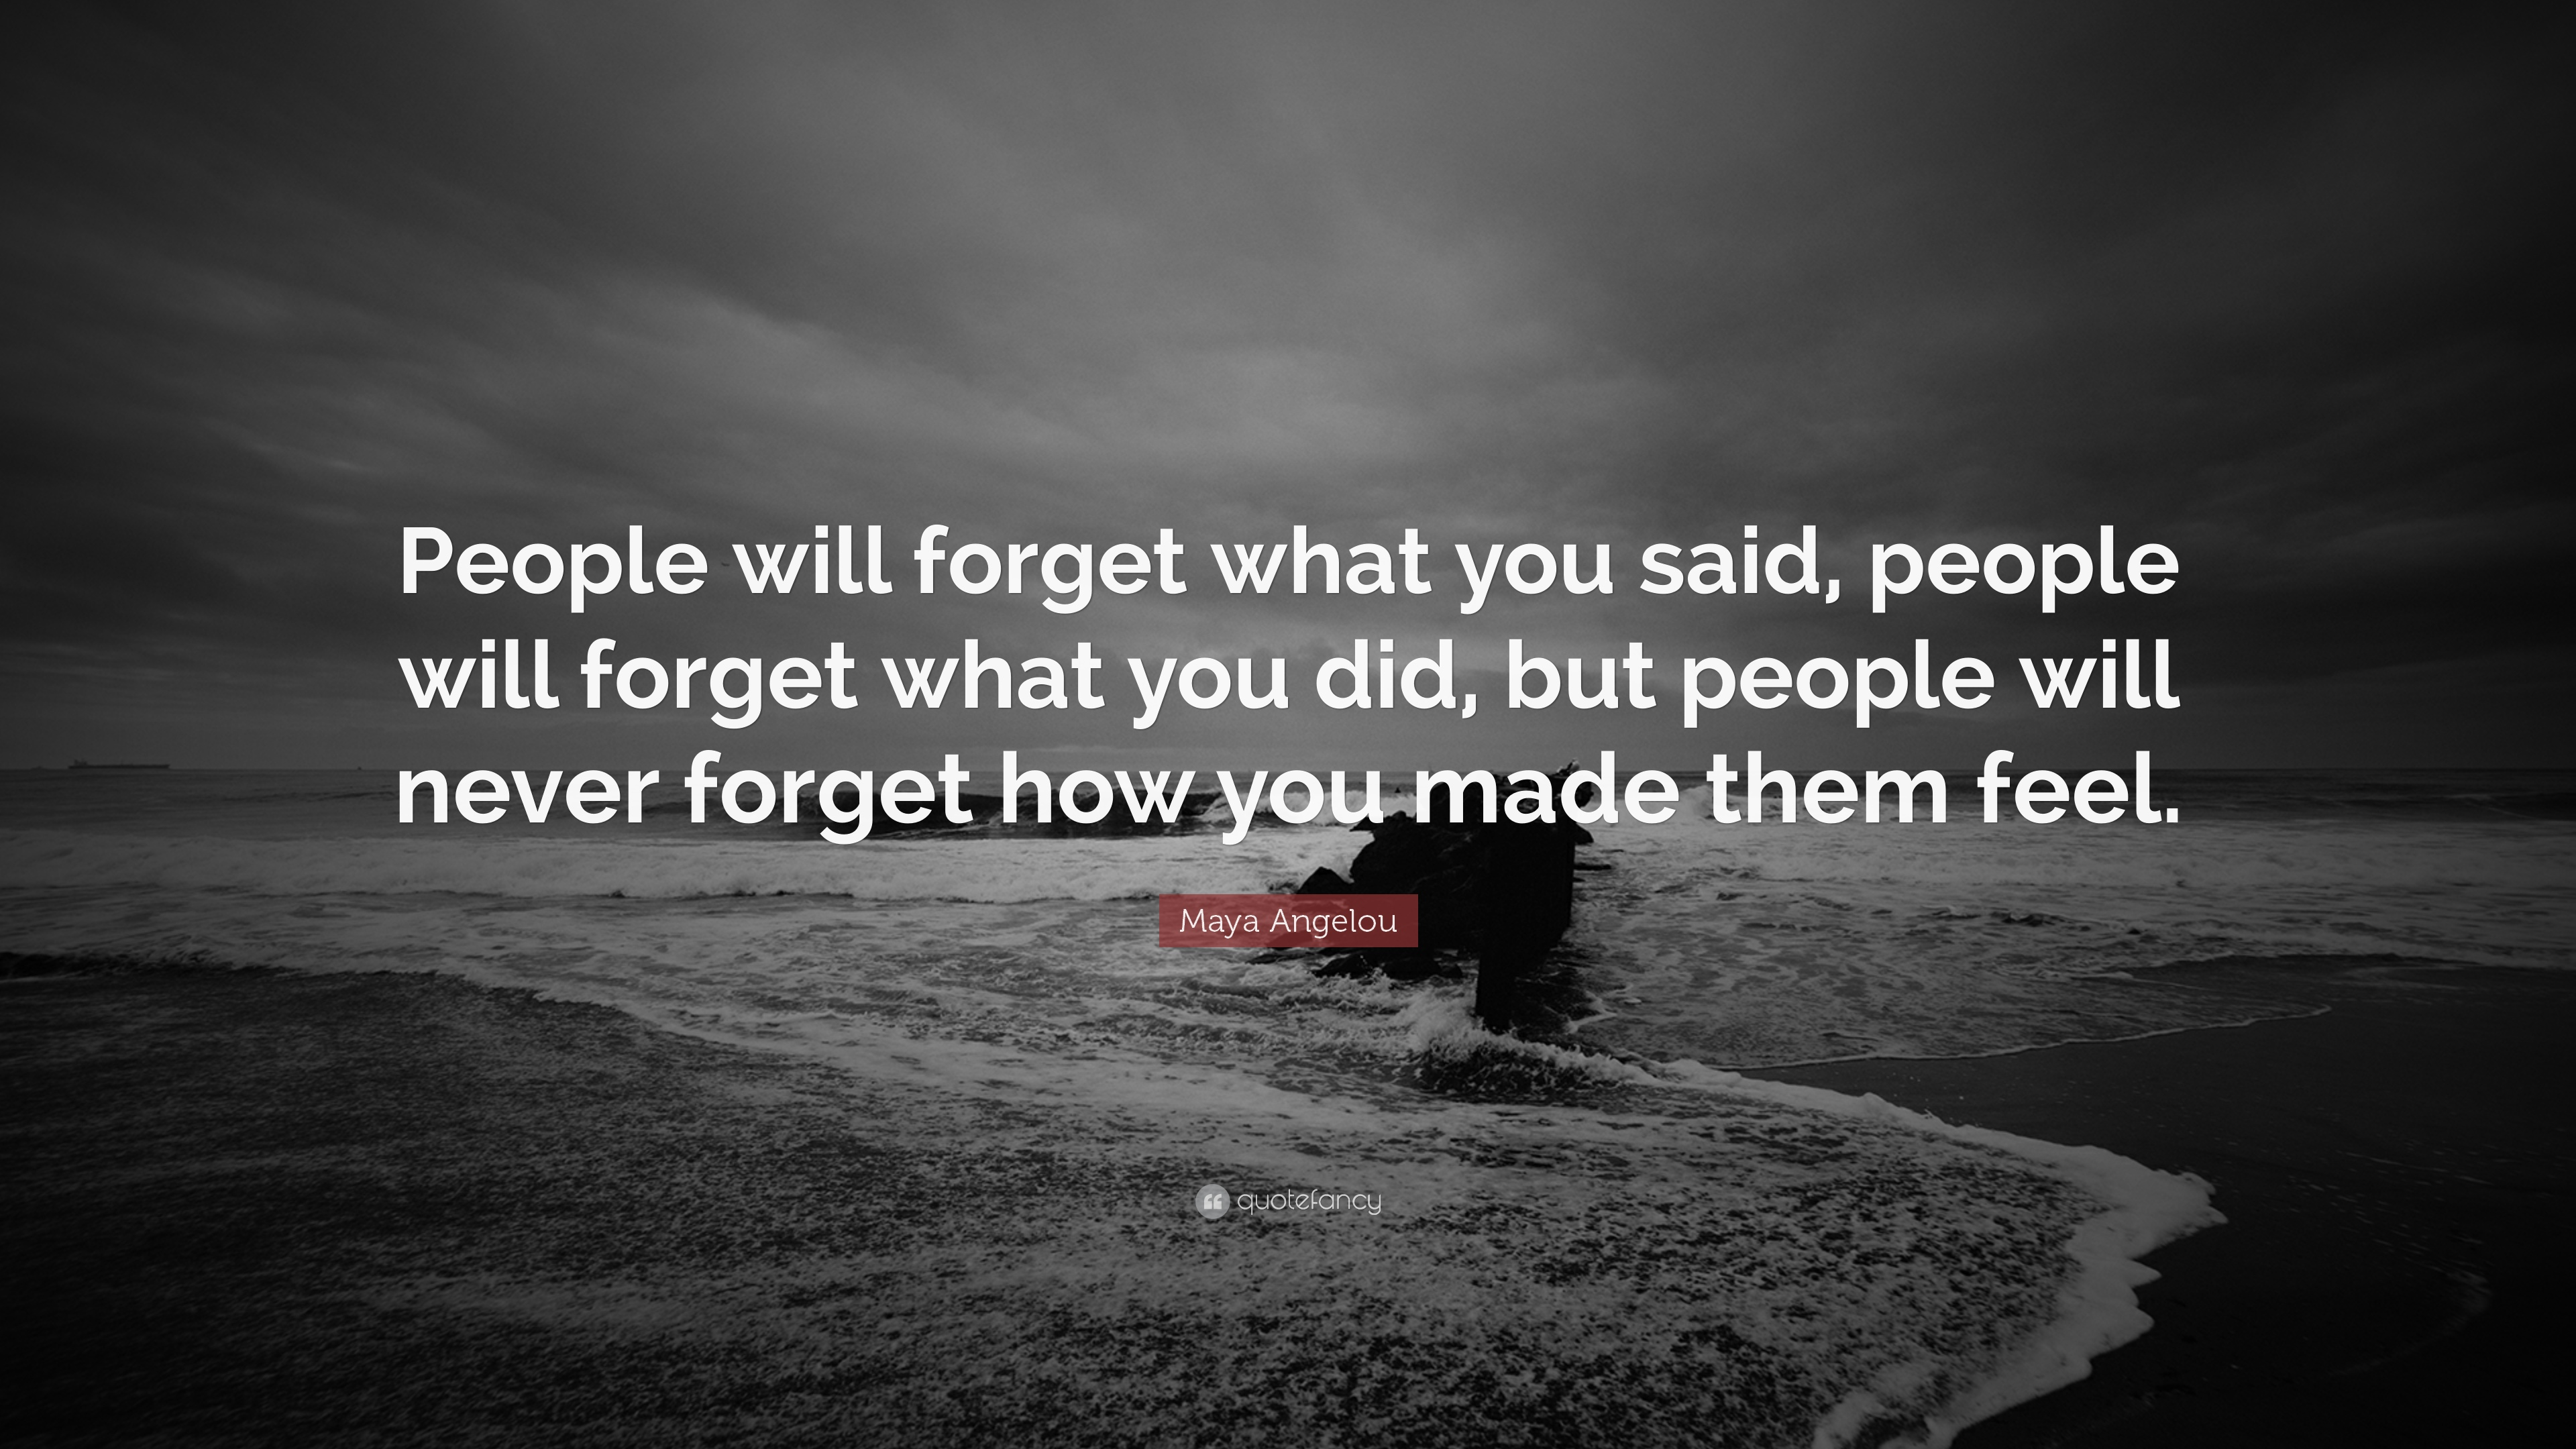 Maya Angelou Quote: People will forget what you said